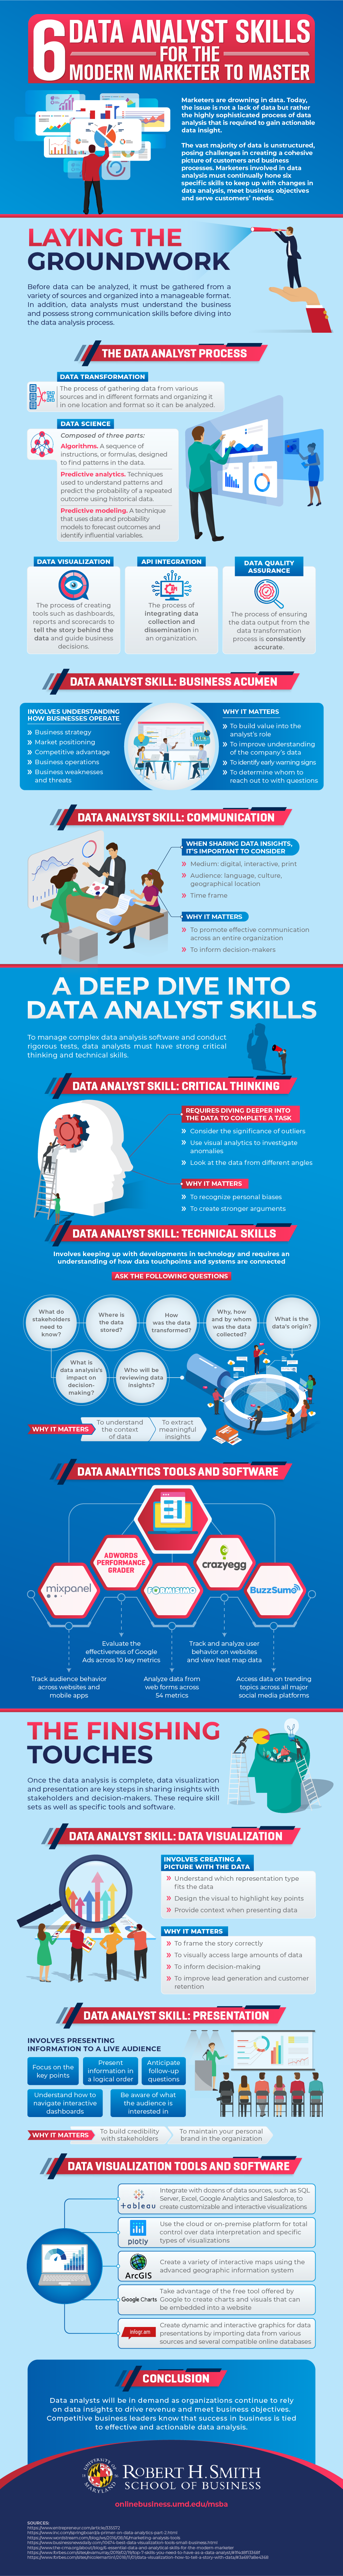 How developing strong data analysis skills can help a company optimize marketing insight.